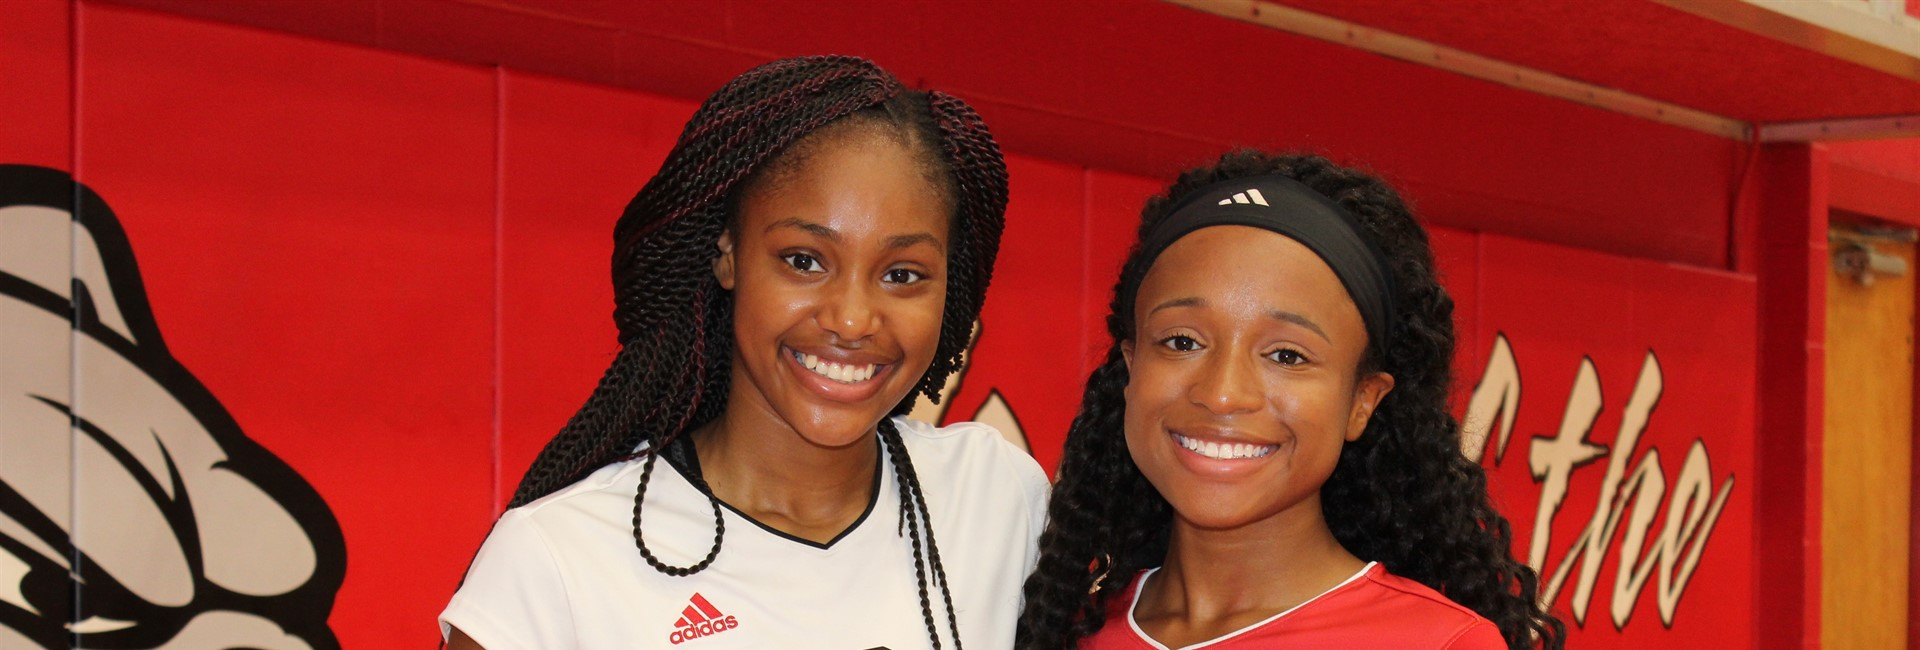 Senior Volleyball Players Latavia Keith and Alaria Long